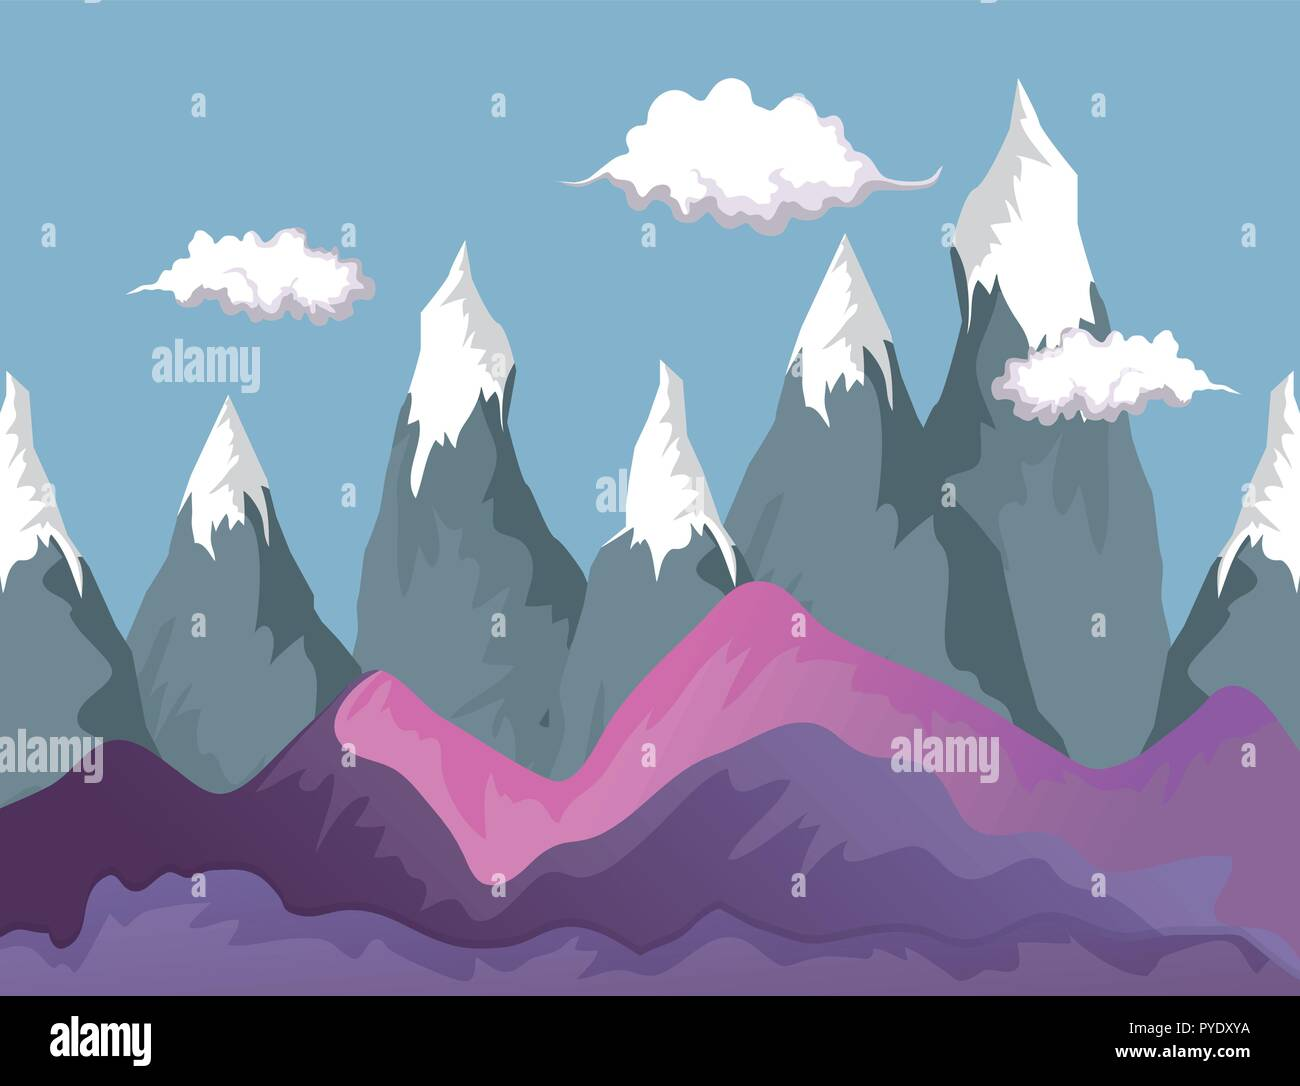 clouds with ice mountains wanderlust landscape - Stock Vector